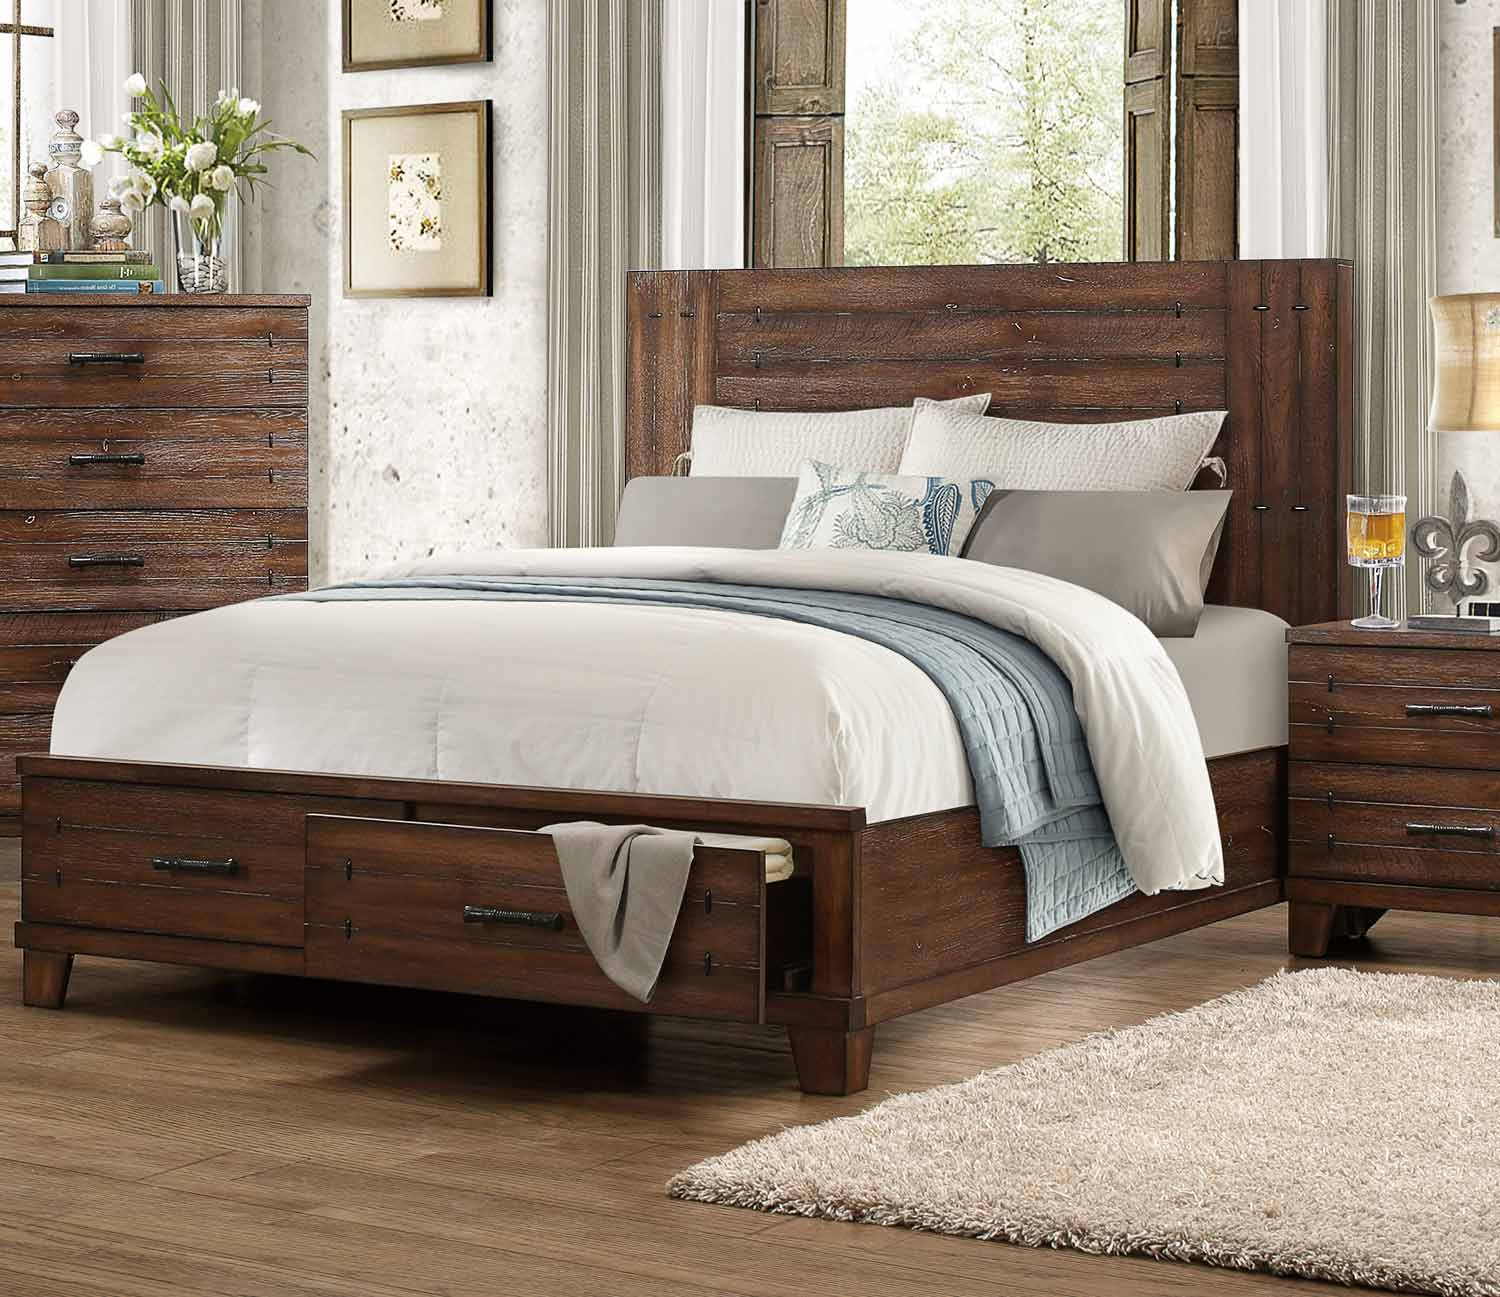 Homelegance Brazoria Bedroom Set Distressed Natural Wood 1877 Bedroom Set